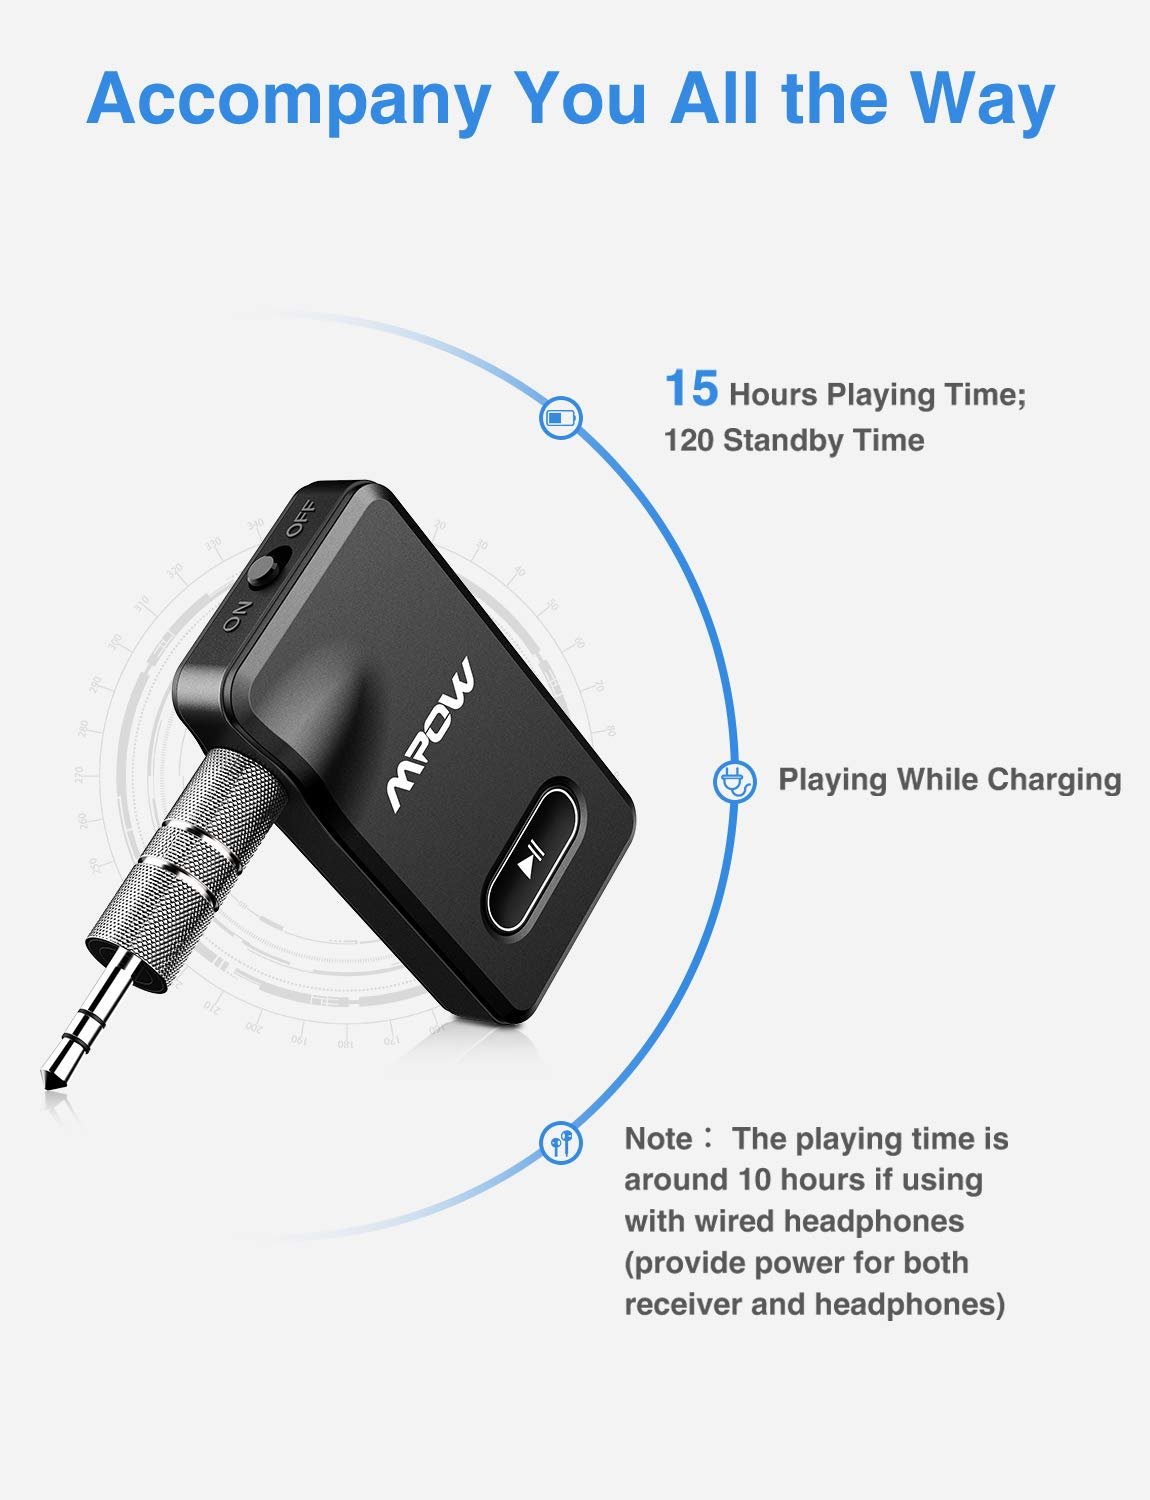 Mpow BH129 Bluetooth Receiver with CSR Chip for Better Music Quality,15 Hours Long Playing Time Bluetooth Adapter, Wireless Audio Car Kits with 1 Second Turn On/Off Button (Dual Link, Voice Assistant) by Mpow (Image #3)